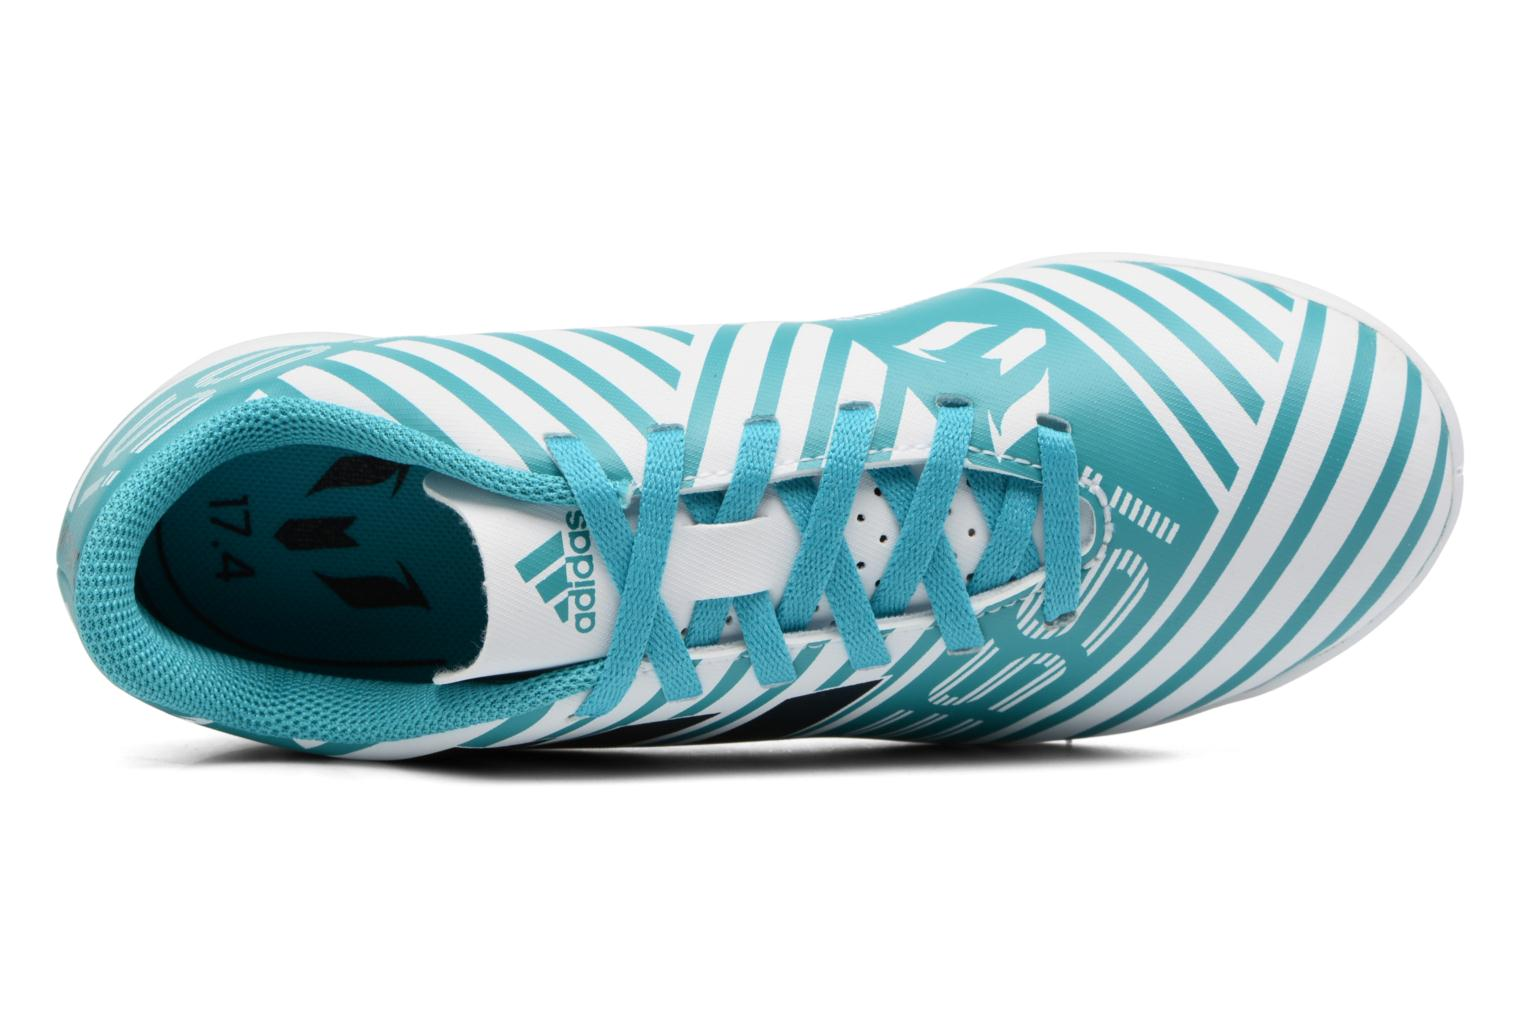 Nemeziz Messi 17.4 In J Ftwbla/Encleg/Bleene